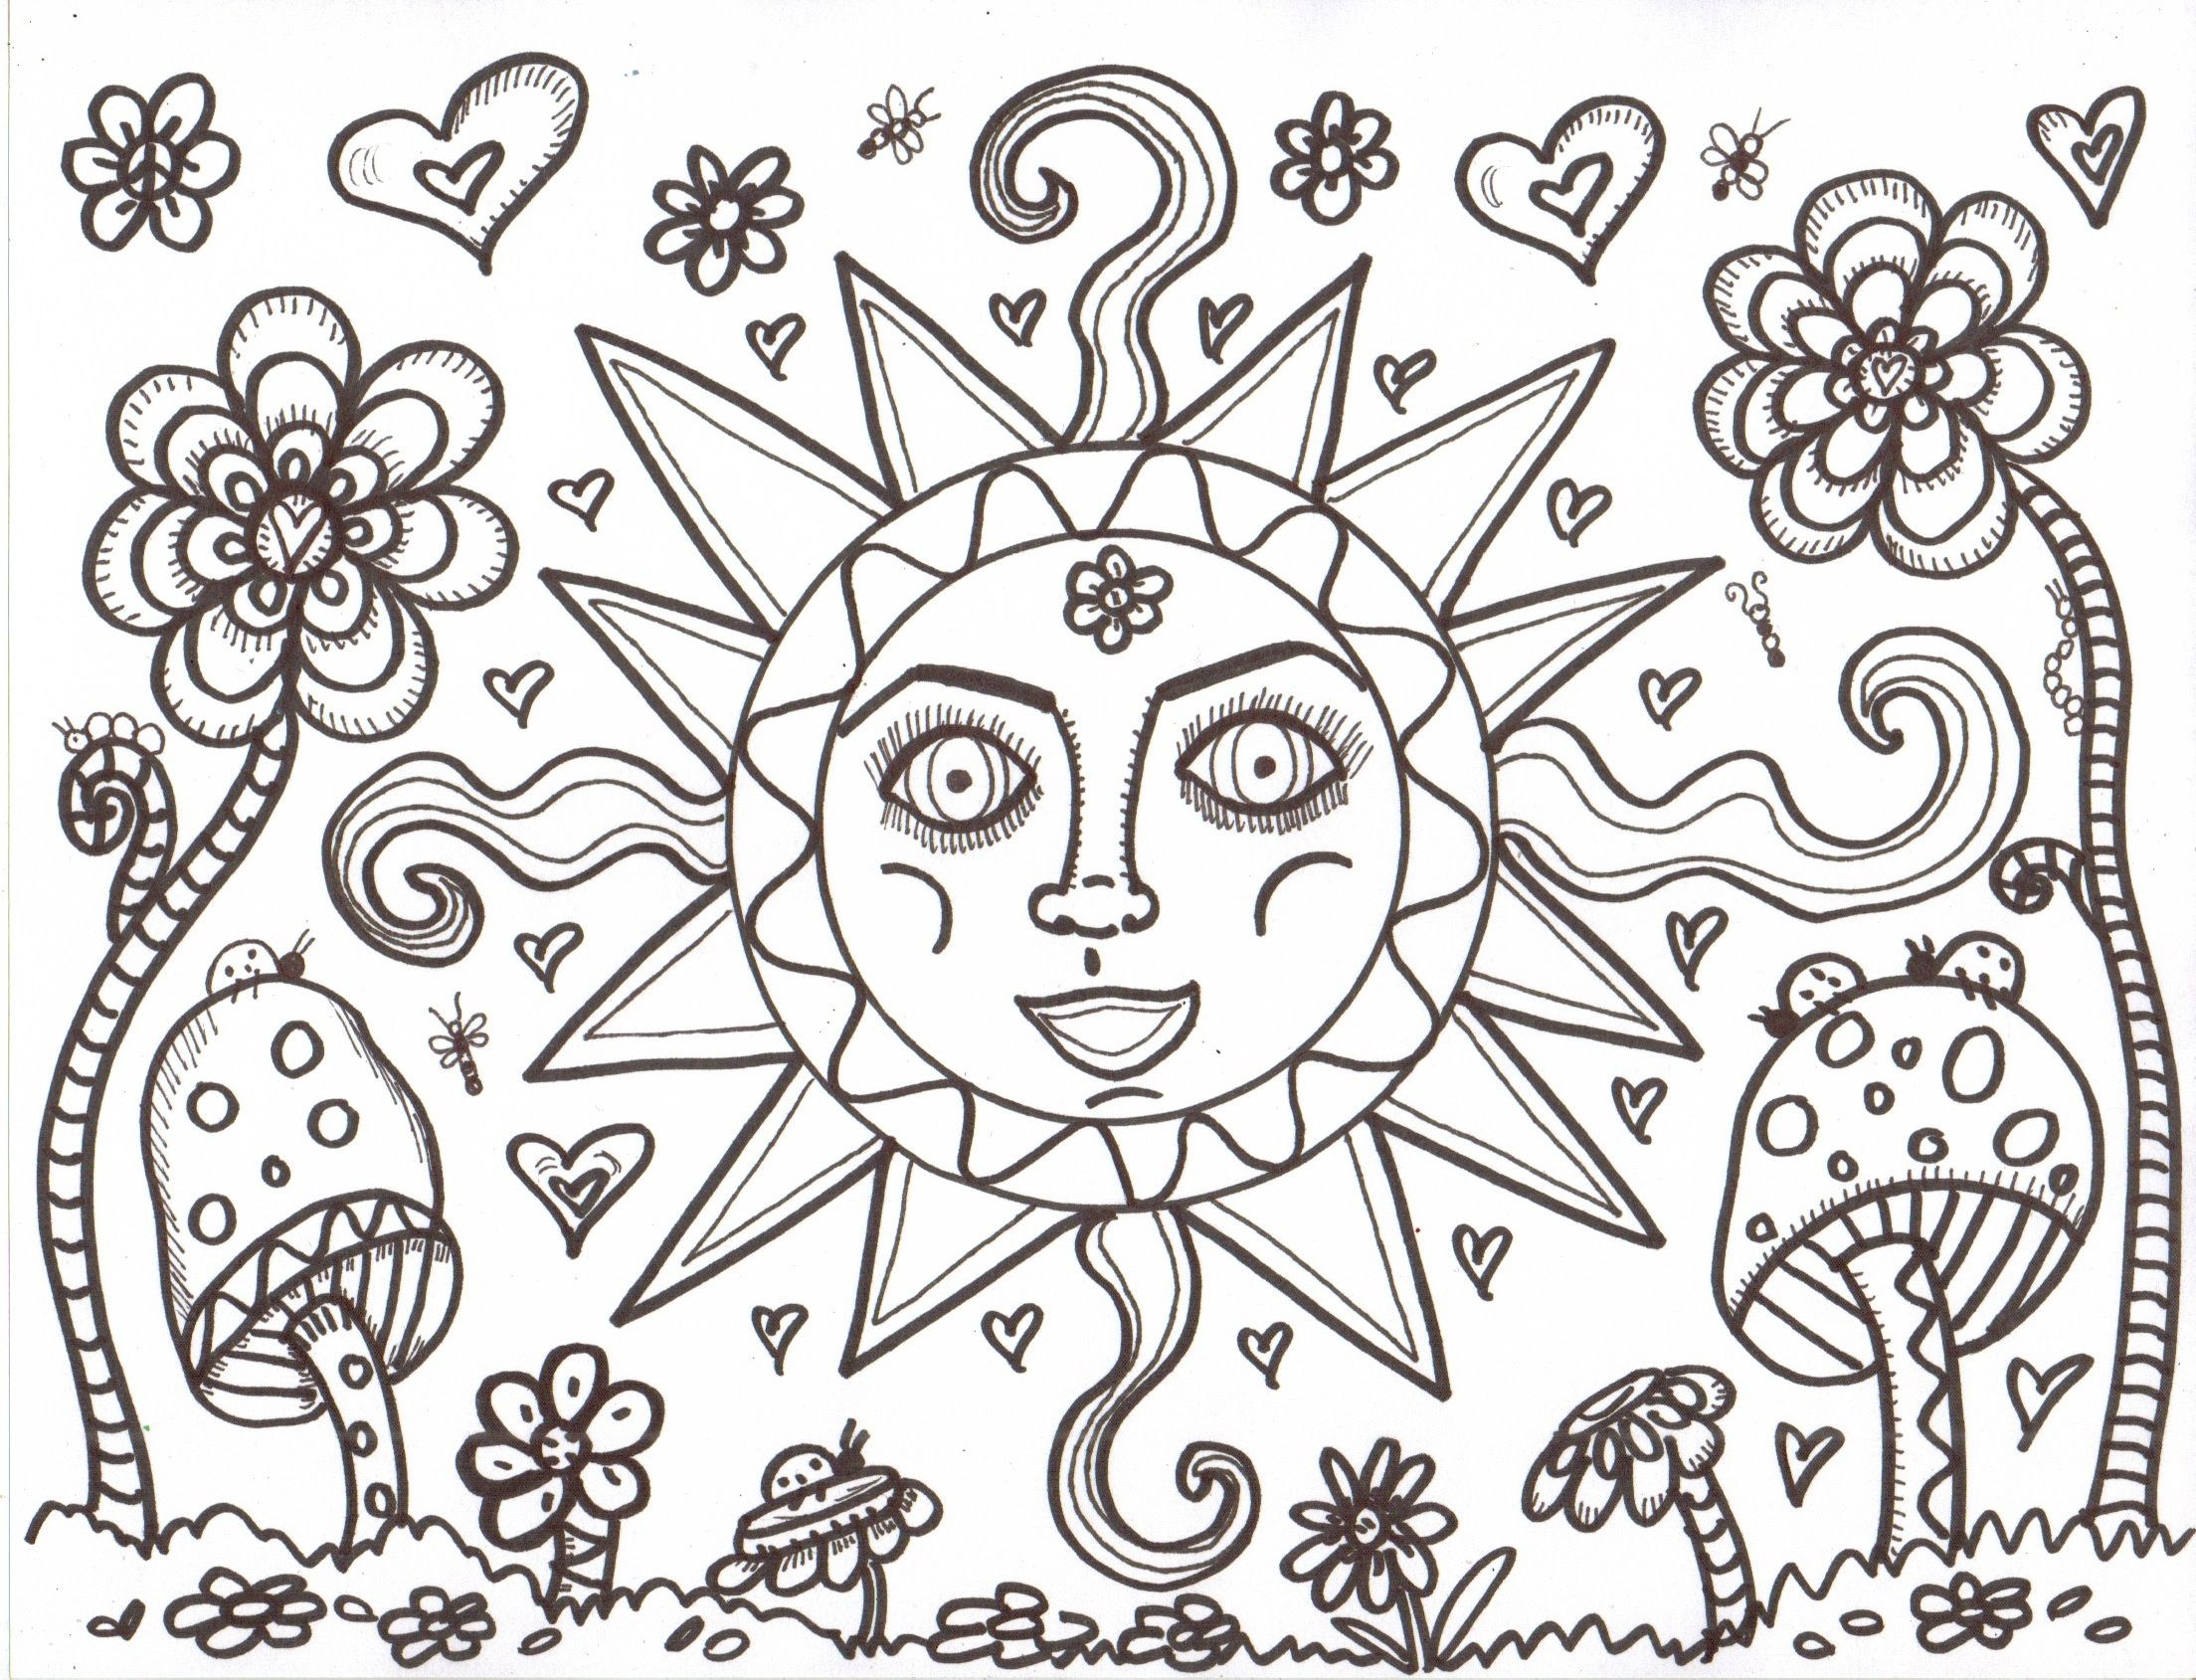 coloring book pages…design your own coloring book | iColor "|2208|1689|?|8e1bb48468f9048636996b73c59d5c15|False|UNLIKELY|0.3096158802509308